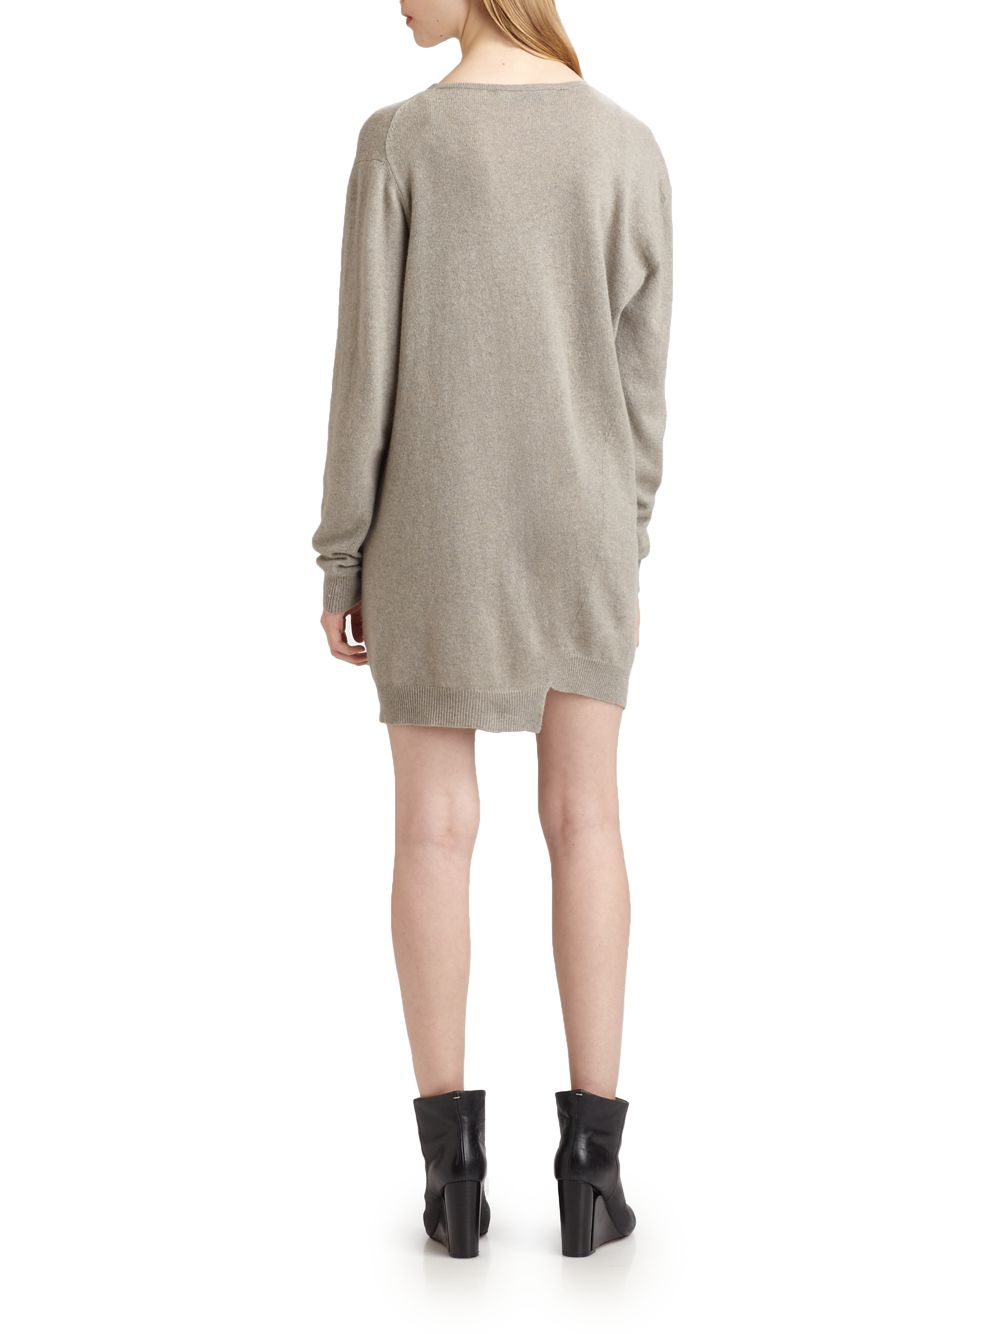 Pringle of scotland Cashmere Sweater Dress in Gray | Lyst